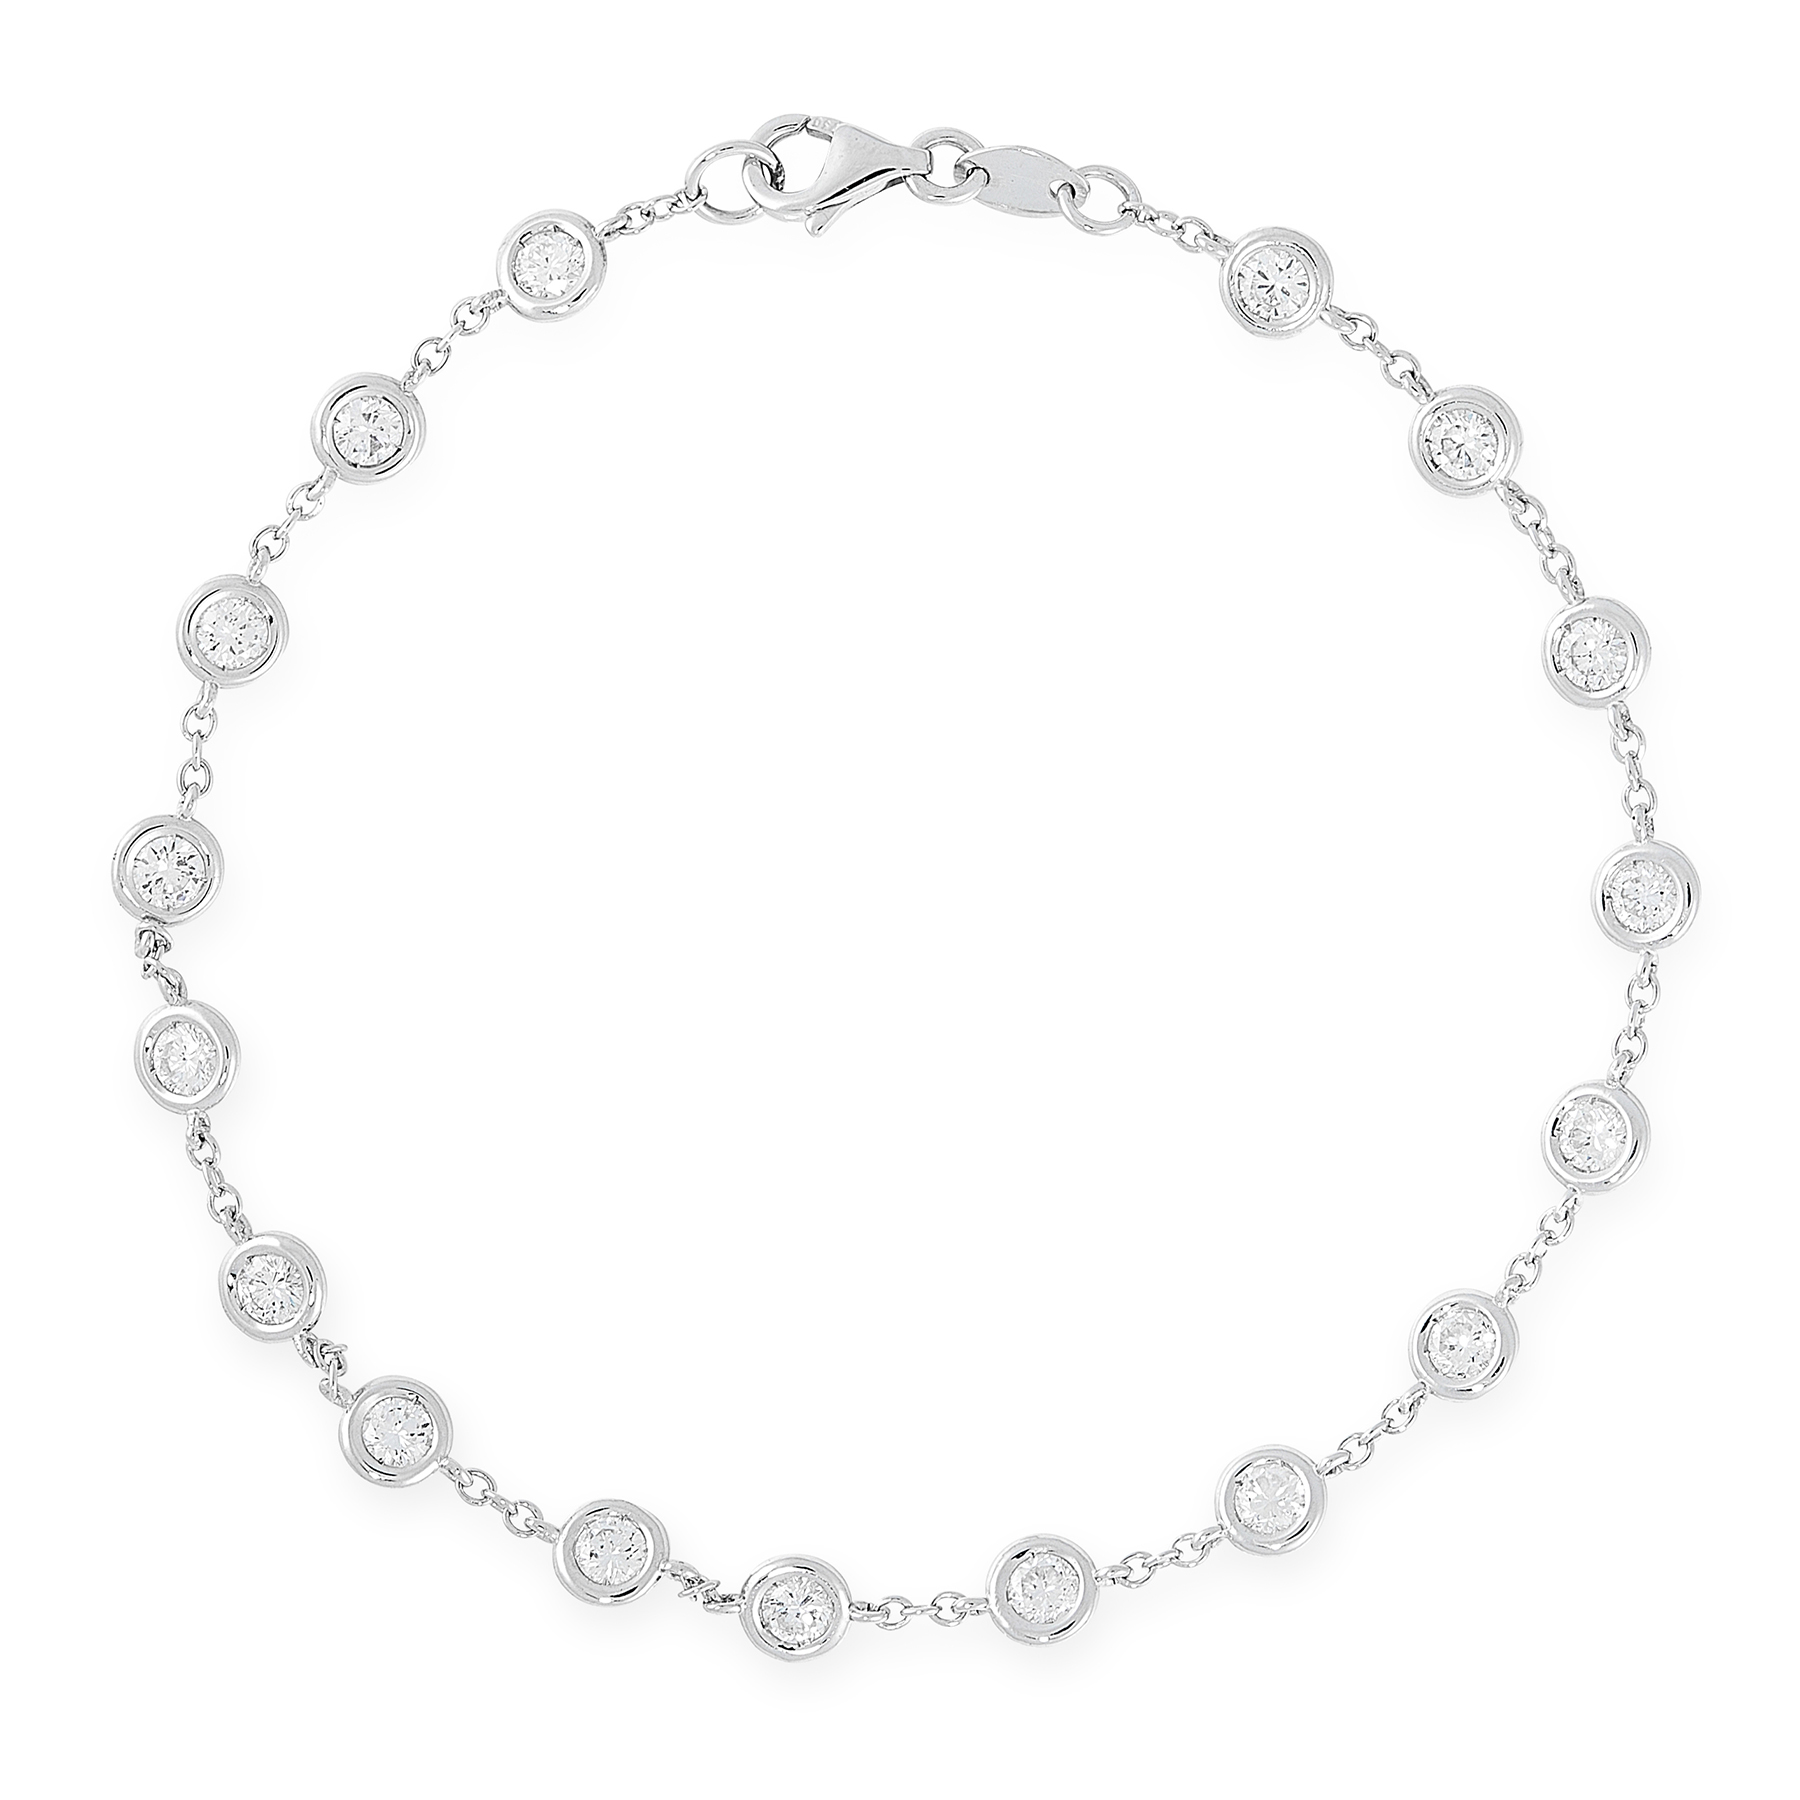 A DIAMOND BRACELET in 18ct white gold, in the manner of Tiffany & Co Diamond by the Yard, set with